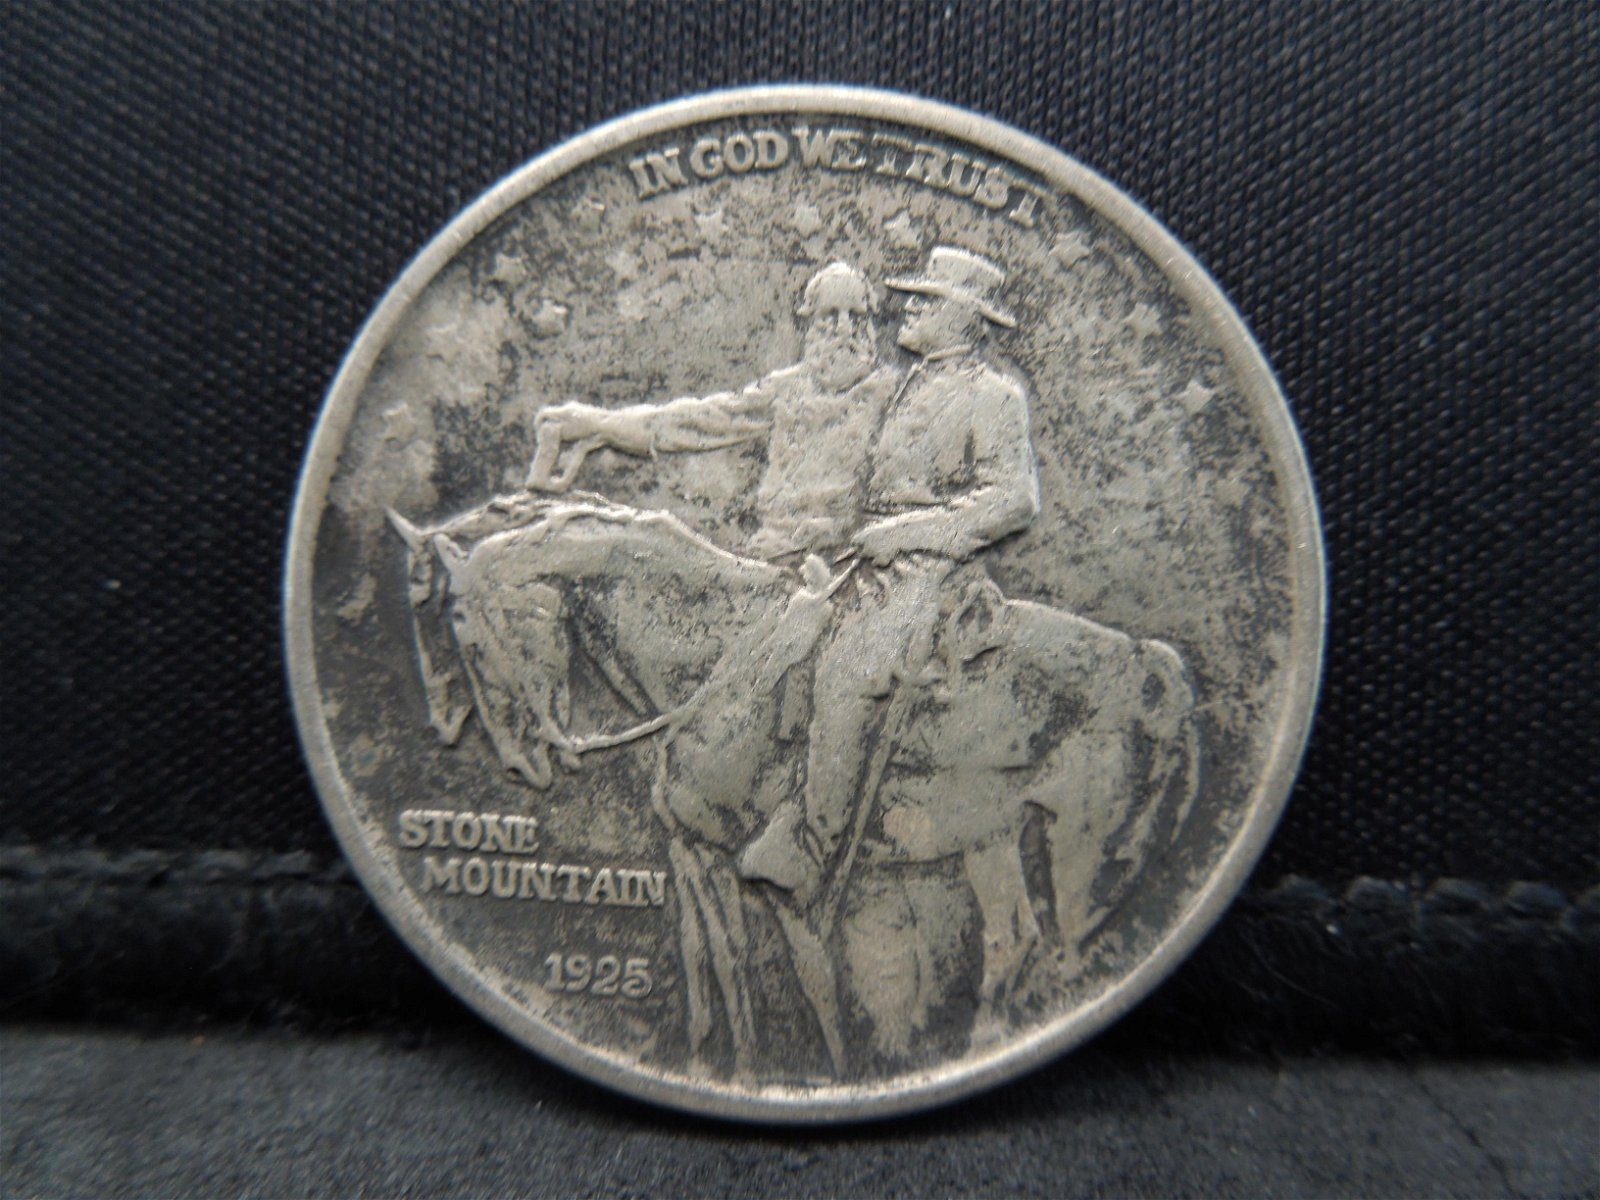 1925 Stone Mountain Half Dollar Commemorative